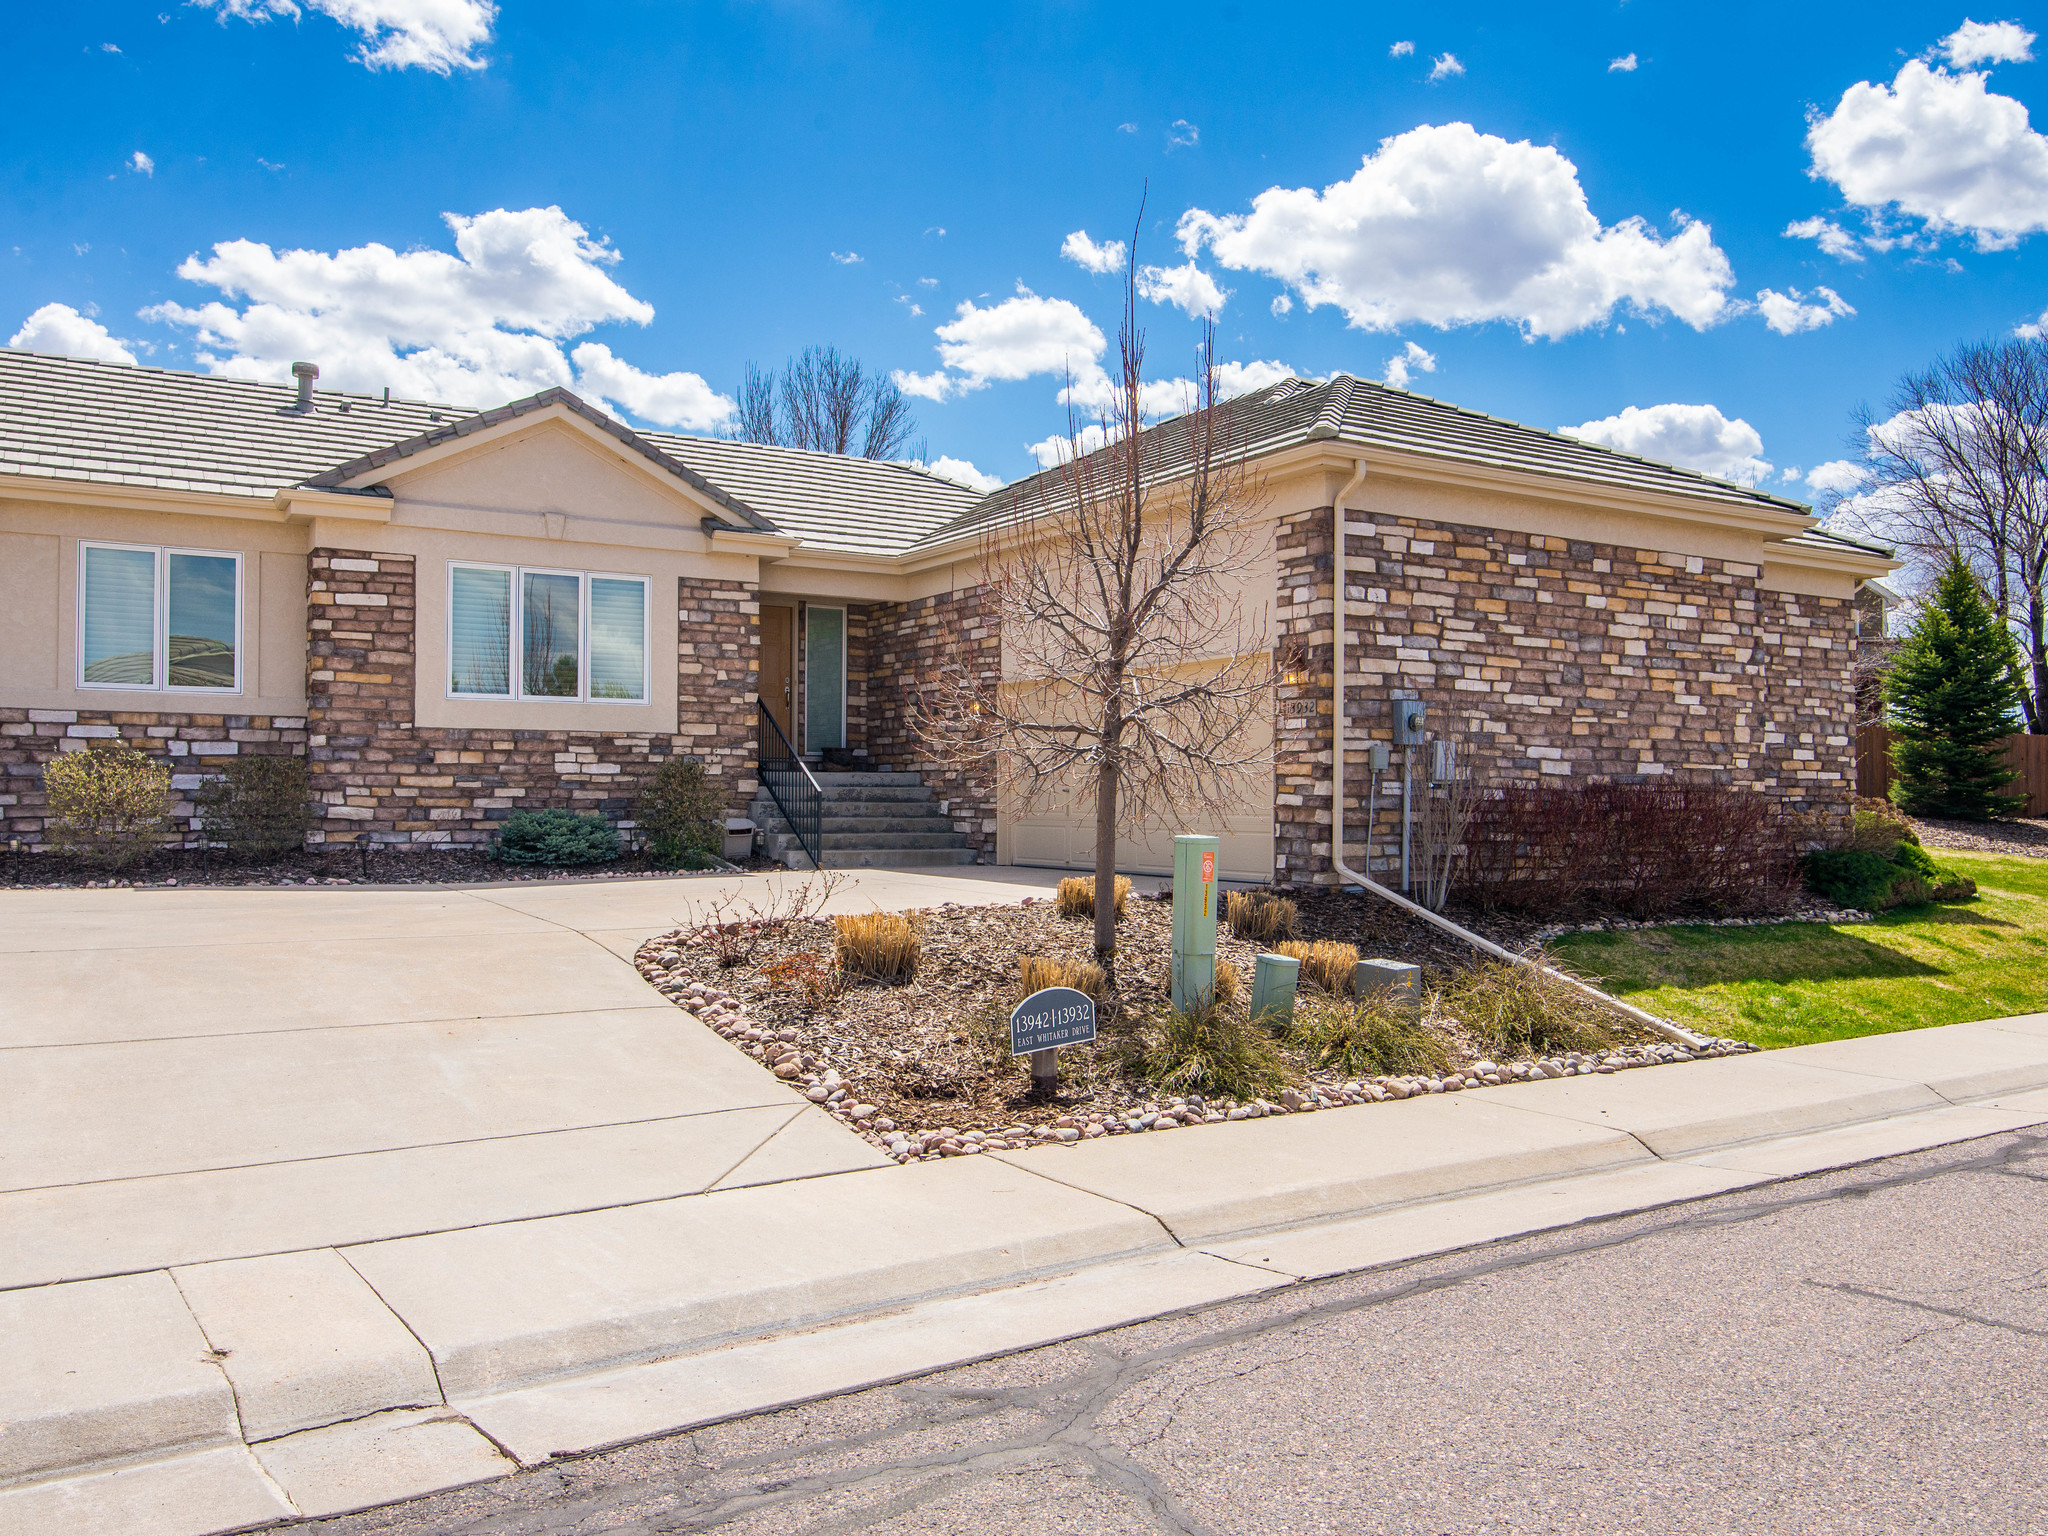 Townhouse for Sale at 13932 E Whitaker Dr Aurora, Colorado, 80015 United States